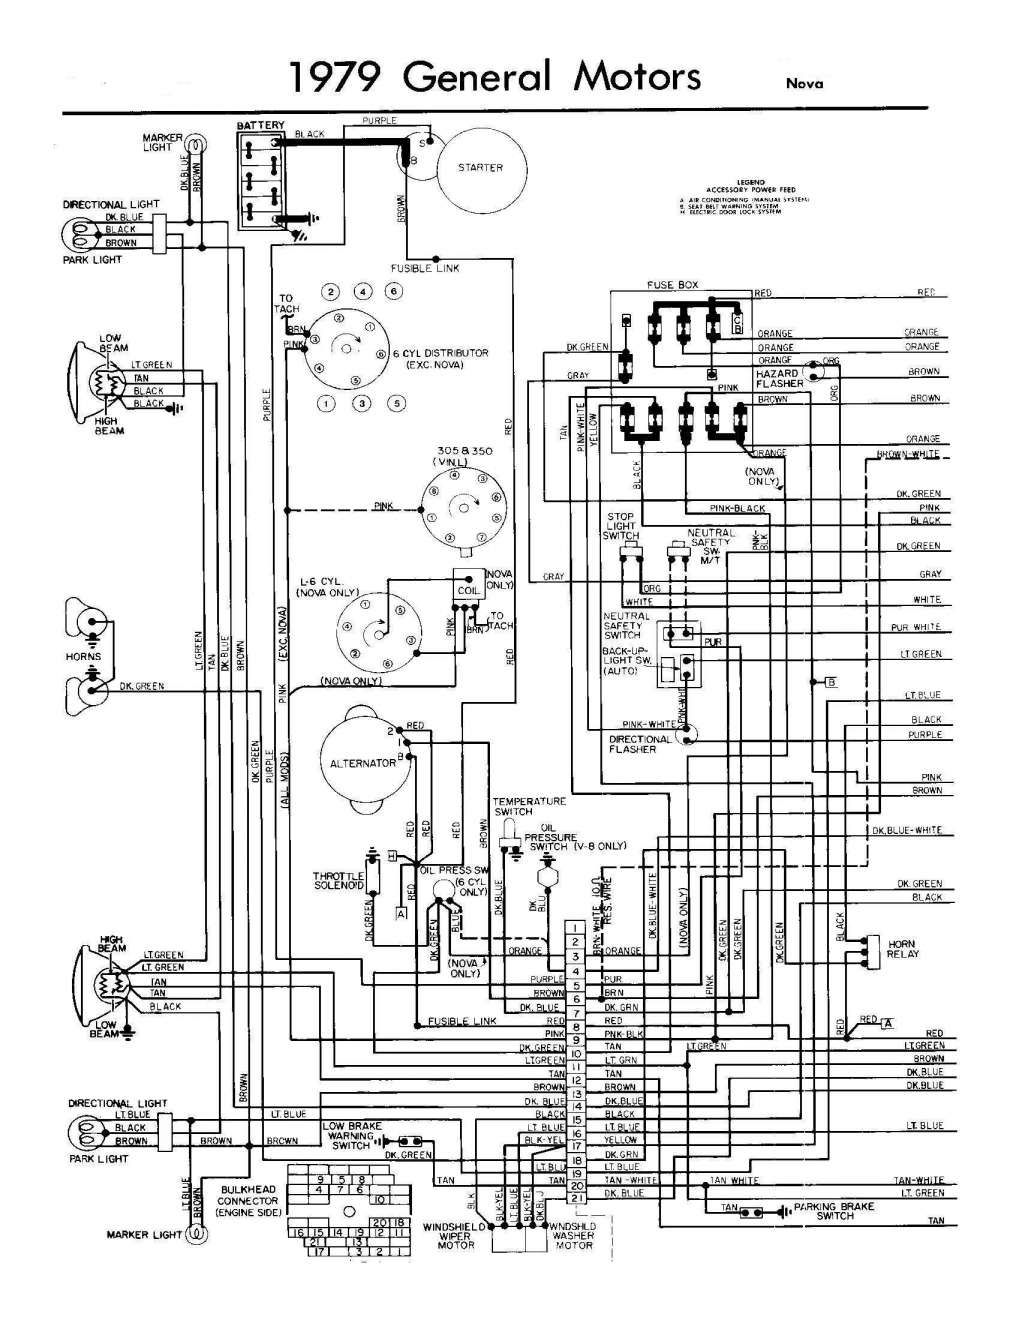 1979 monte carlo wiring diagram - wiring diagram schematics 76 monte carlo wiring diagram 1978 chevy truck wiring diagram wiring diagram schematics